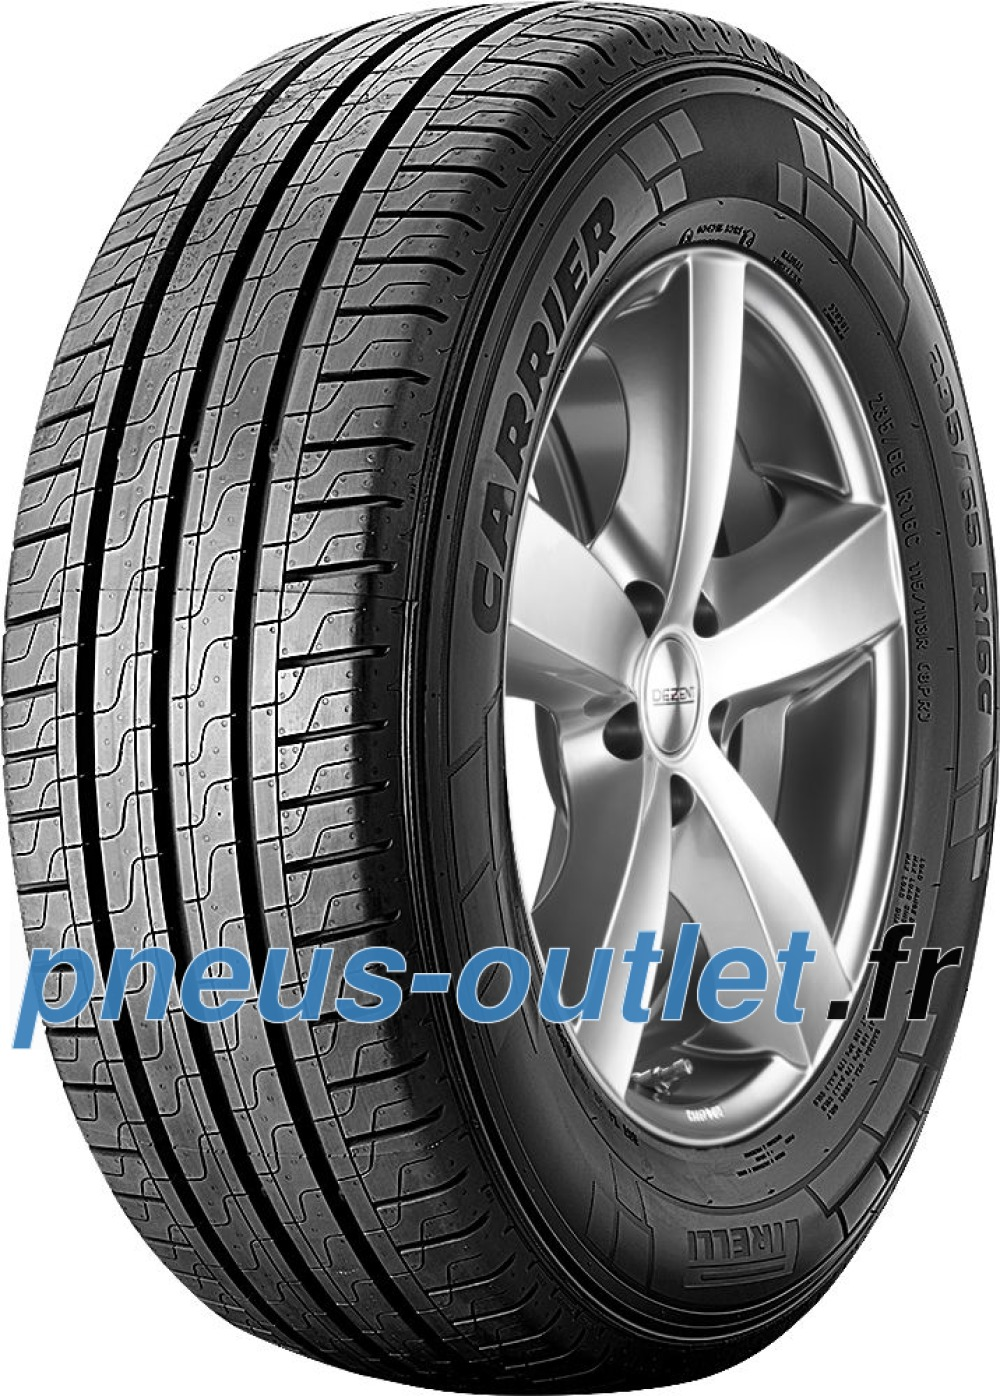 Pirelli Carrier ( 225/60 R16C 111/109T Double marquage 105H )